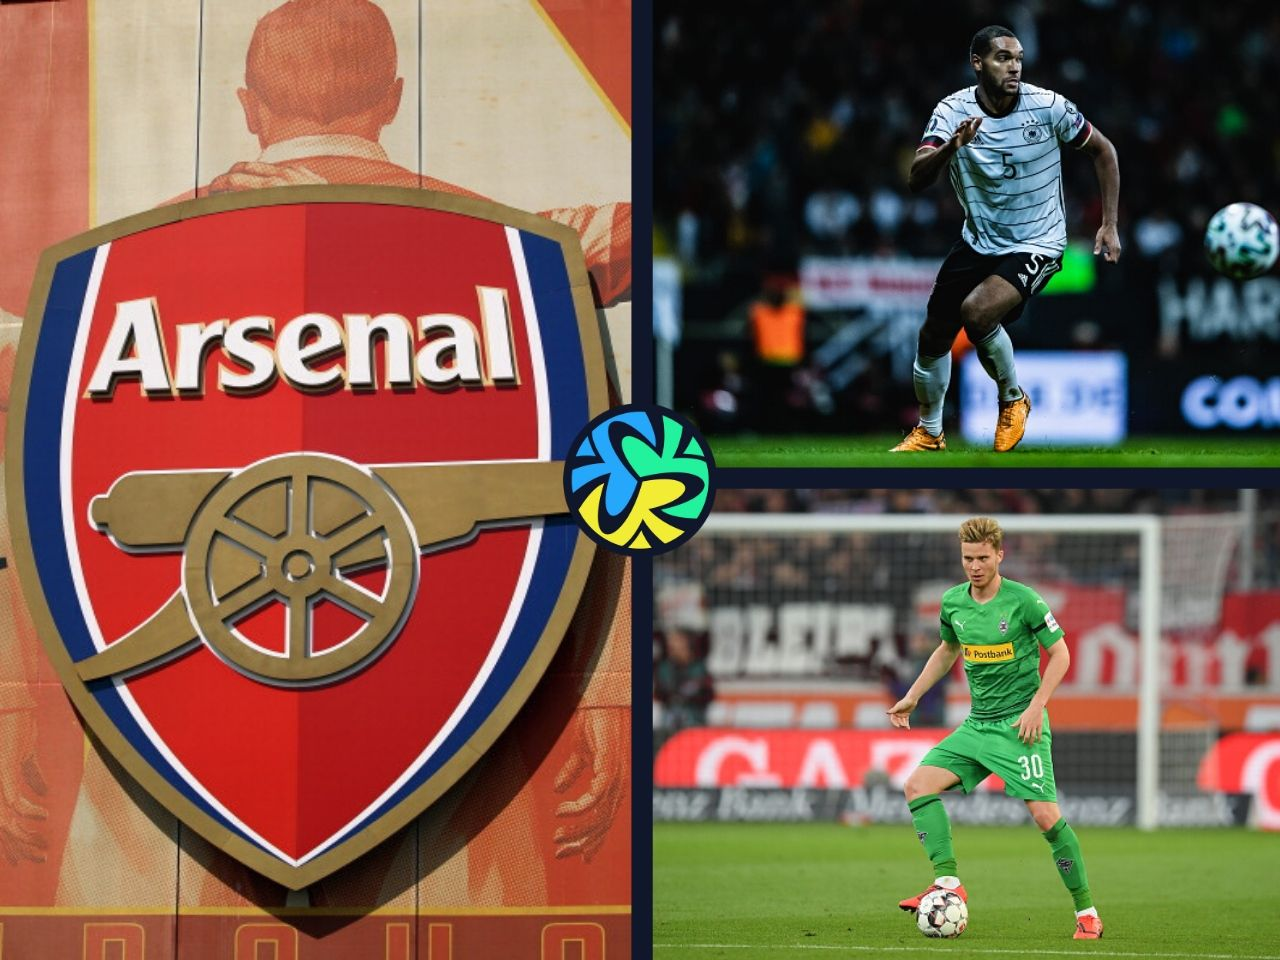 The Top 5 defensive targets for Arsenal in 2020